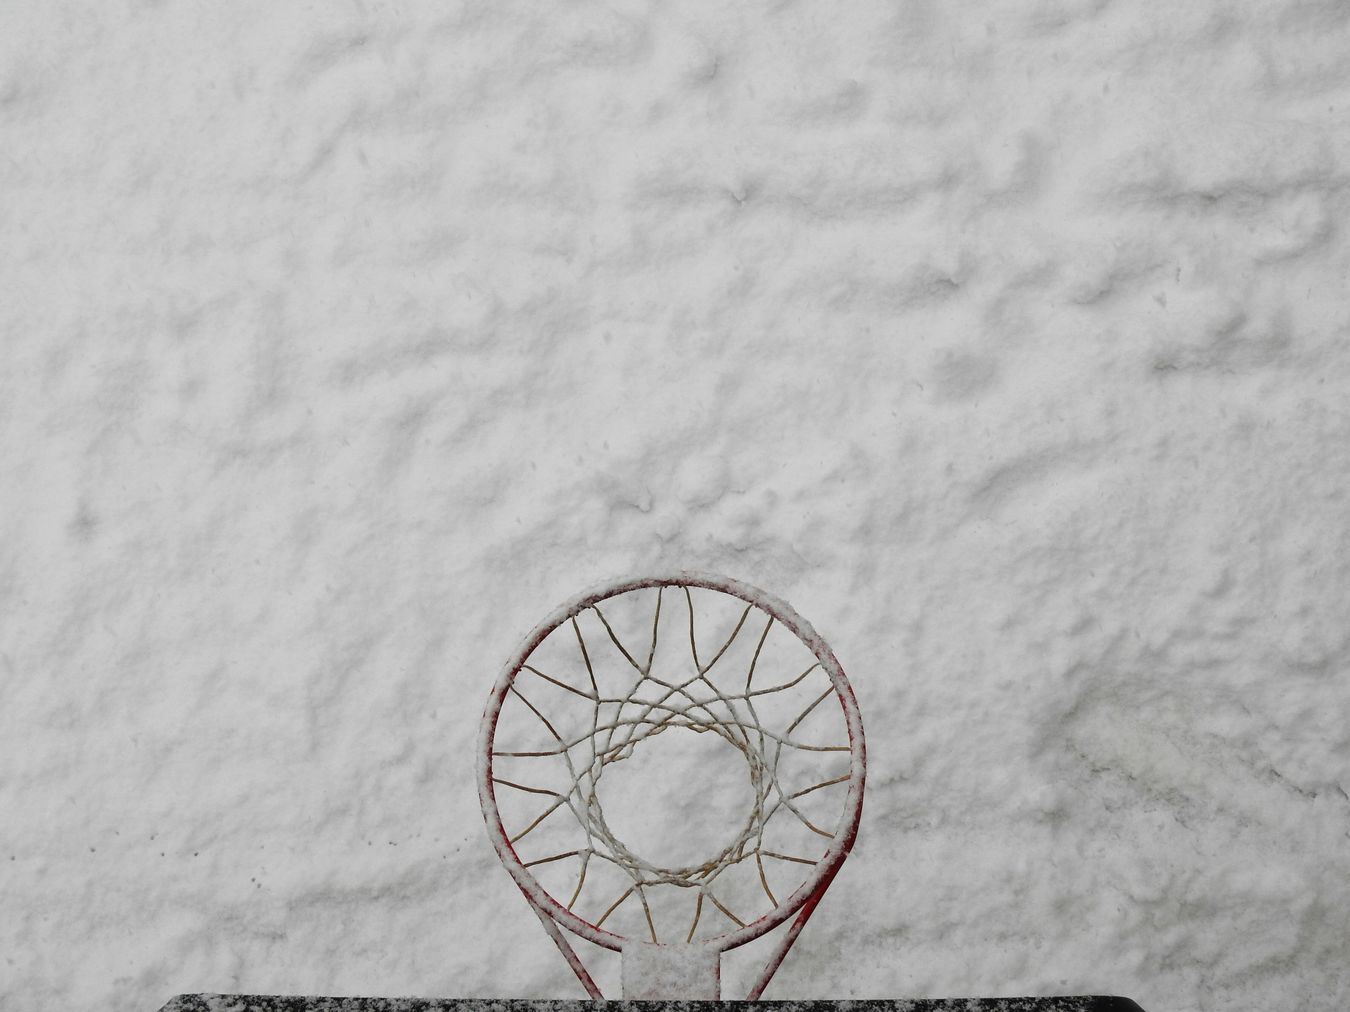 Sport Basketball Hoop Basketball - Sport No People Outdoors Ball Basketball Day Snow Day Light First Eyeem Photo View White Adapted To The City Winter Snow Cold Temperature Taking A Shot - Sport NBA Backyard Rim Snowball Nature Afternoon From Up